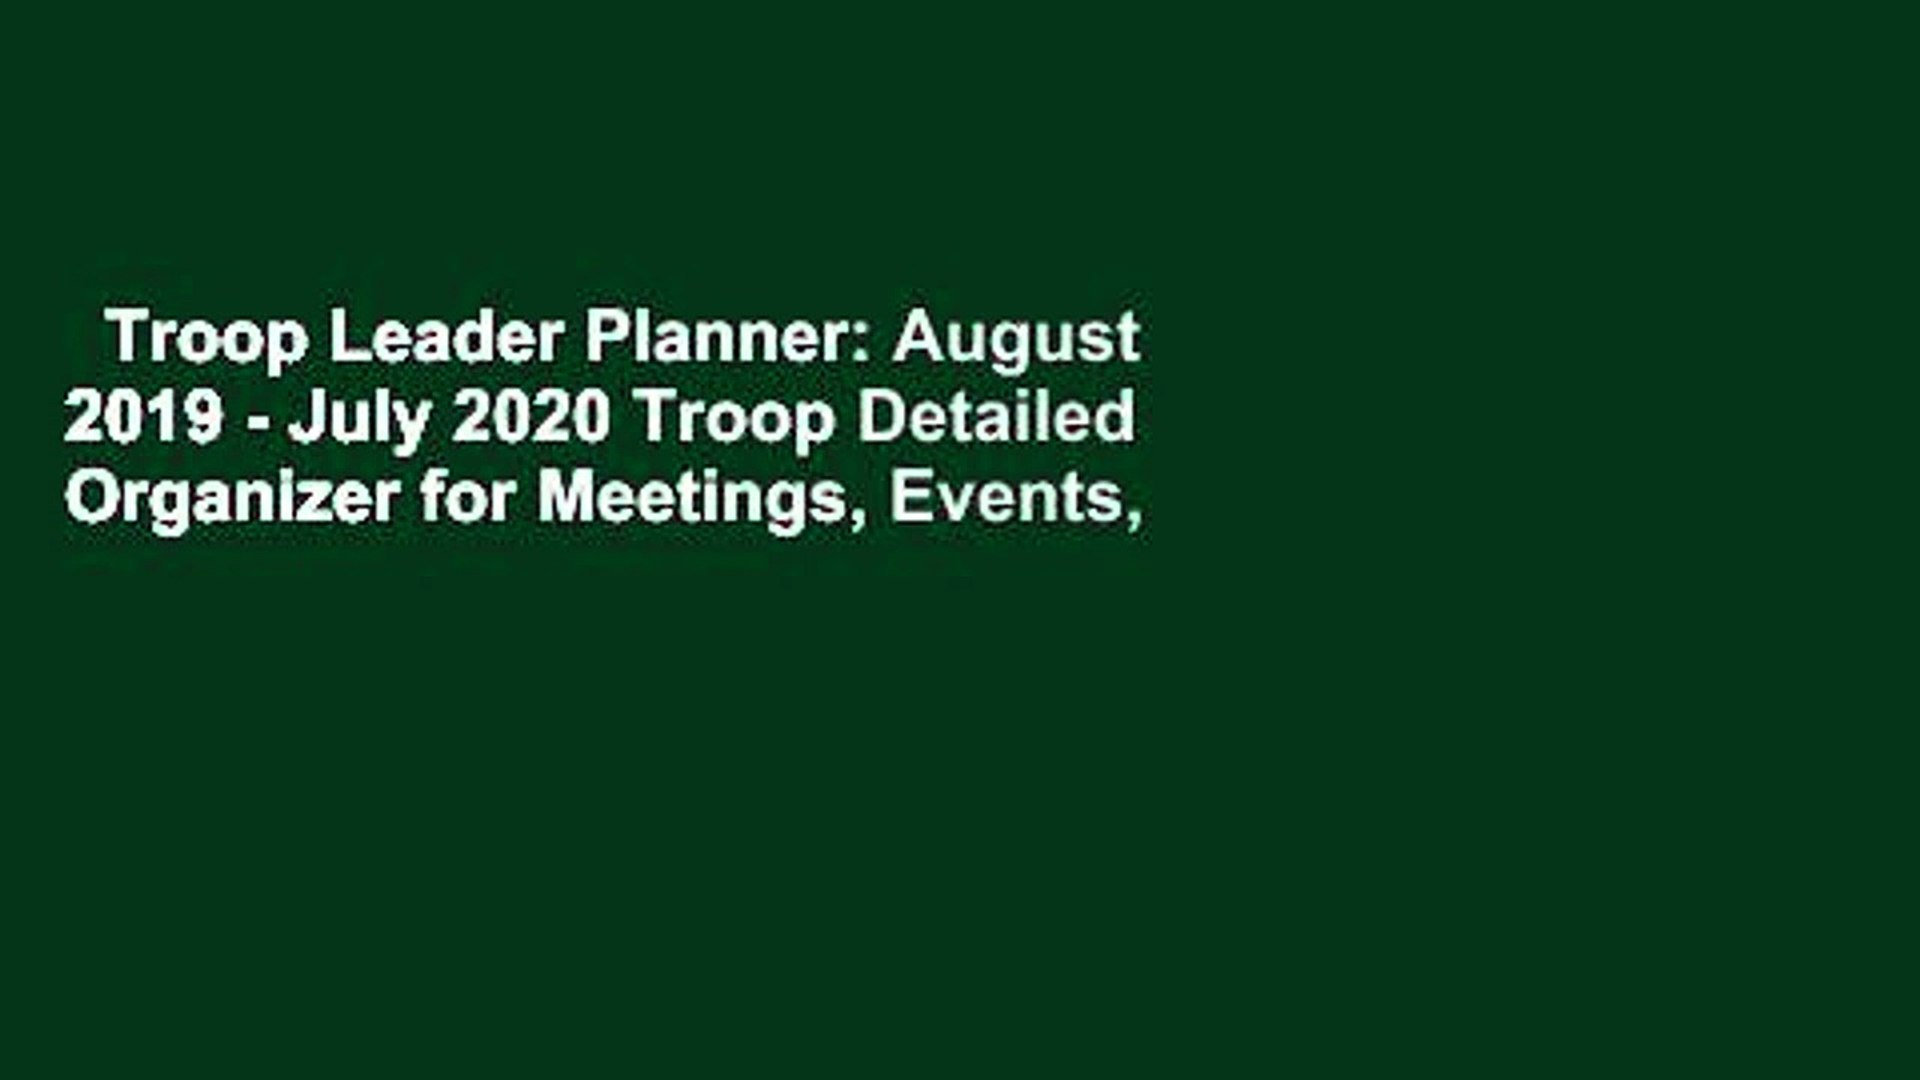 Troop Leader Planner: August 2019 - July 2020 Troop Detailed Organizer for Meetings, Events,